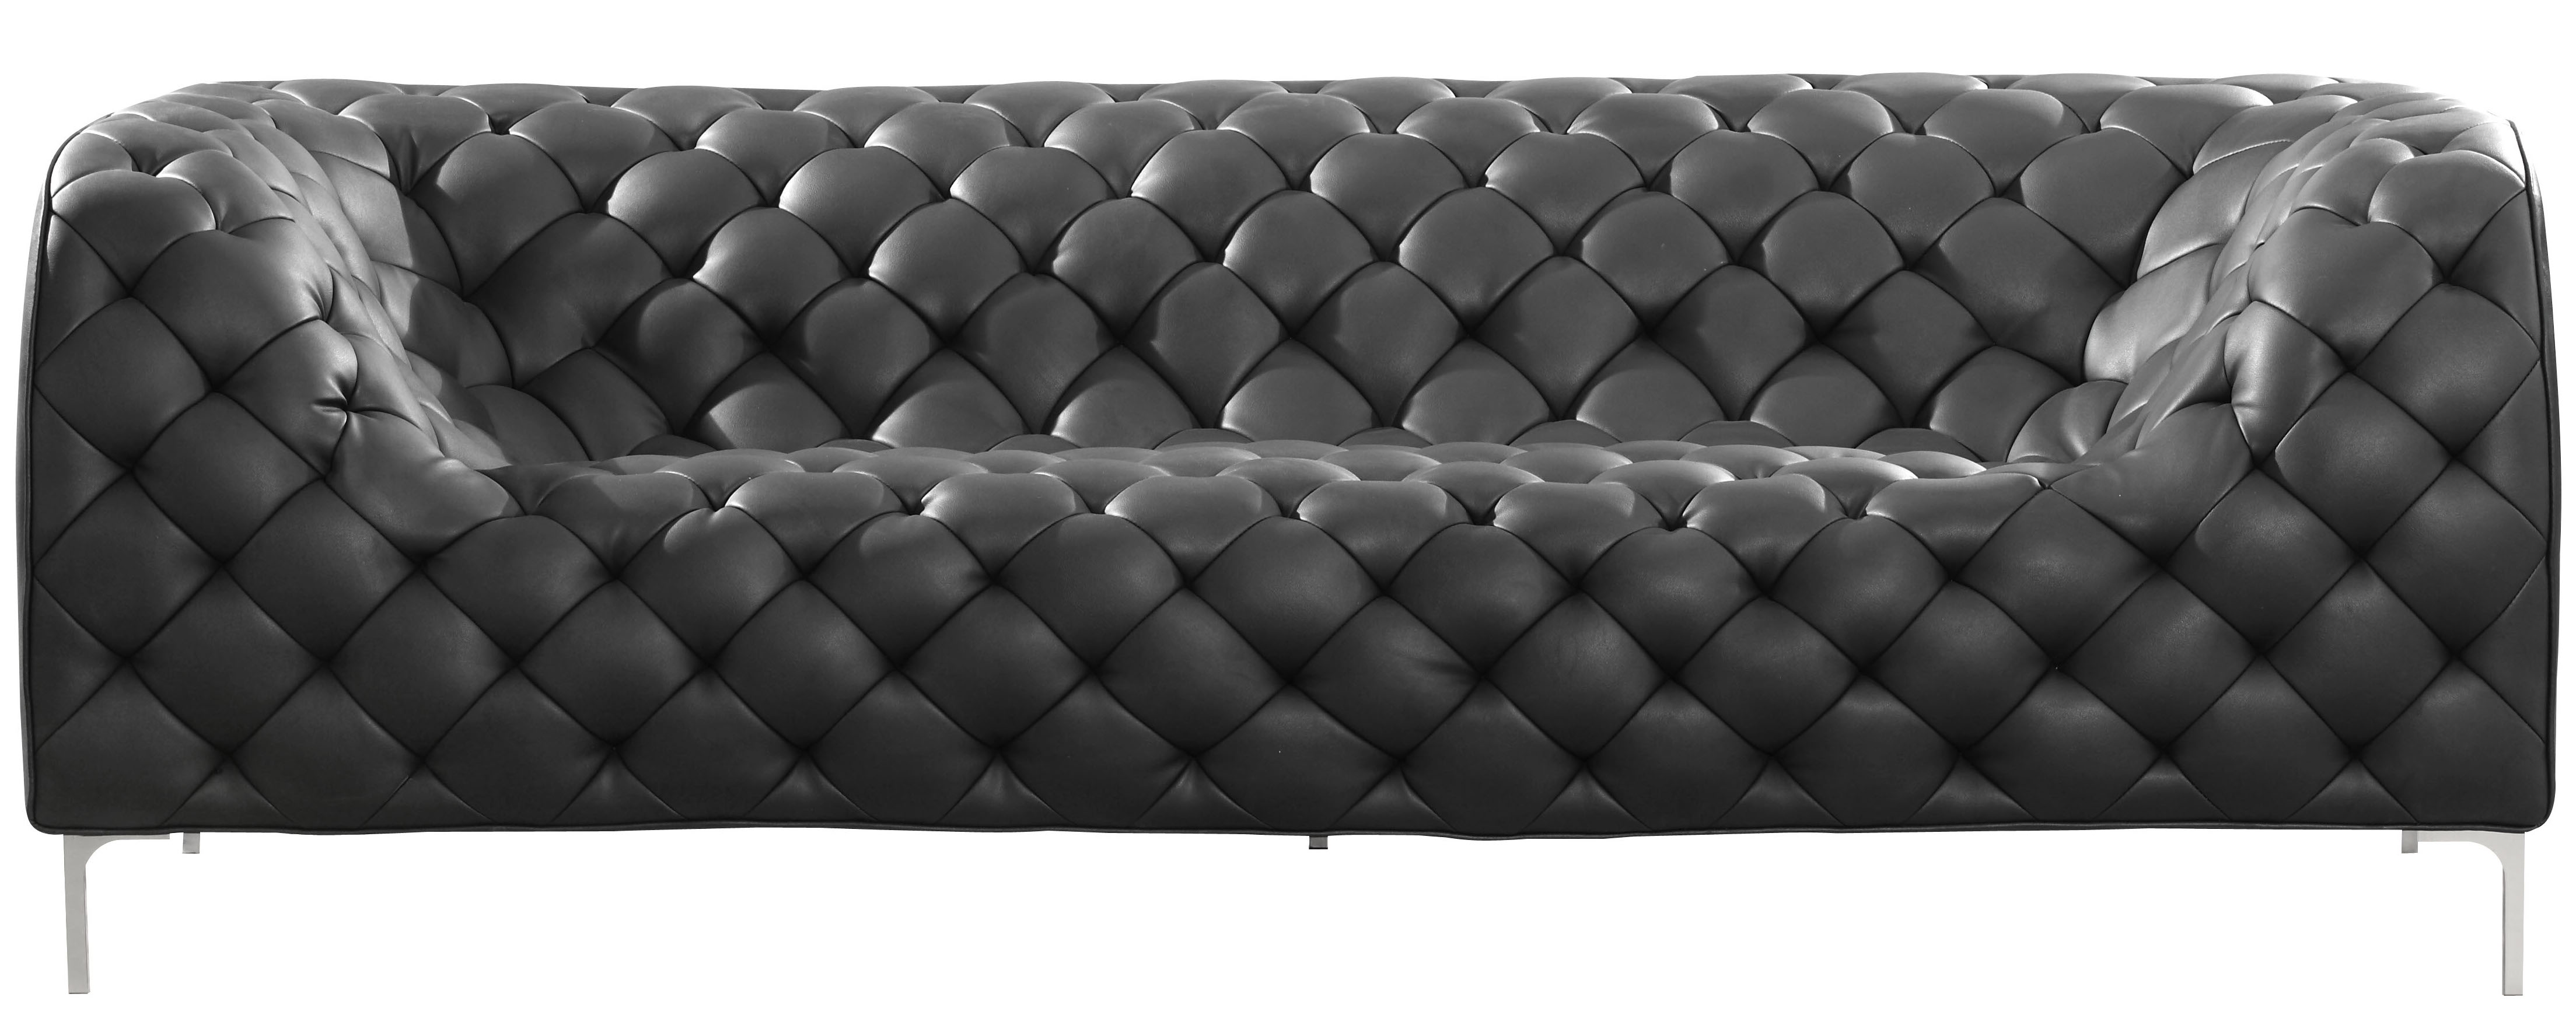 Charmant ... Providence Sofa Black Zuo ...